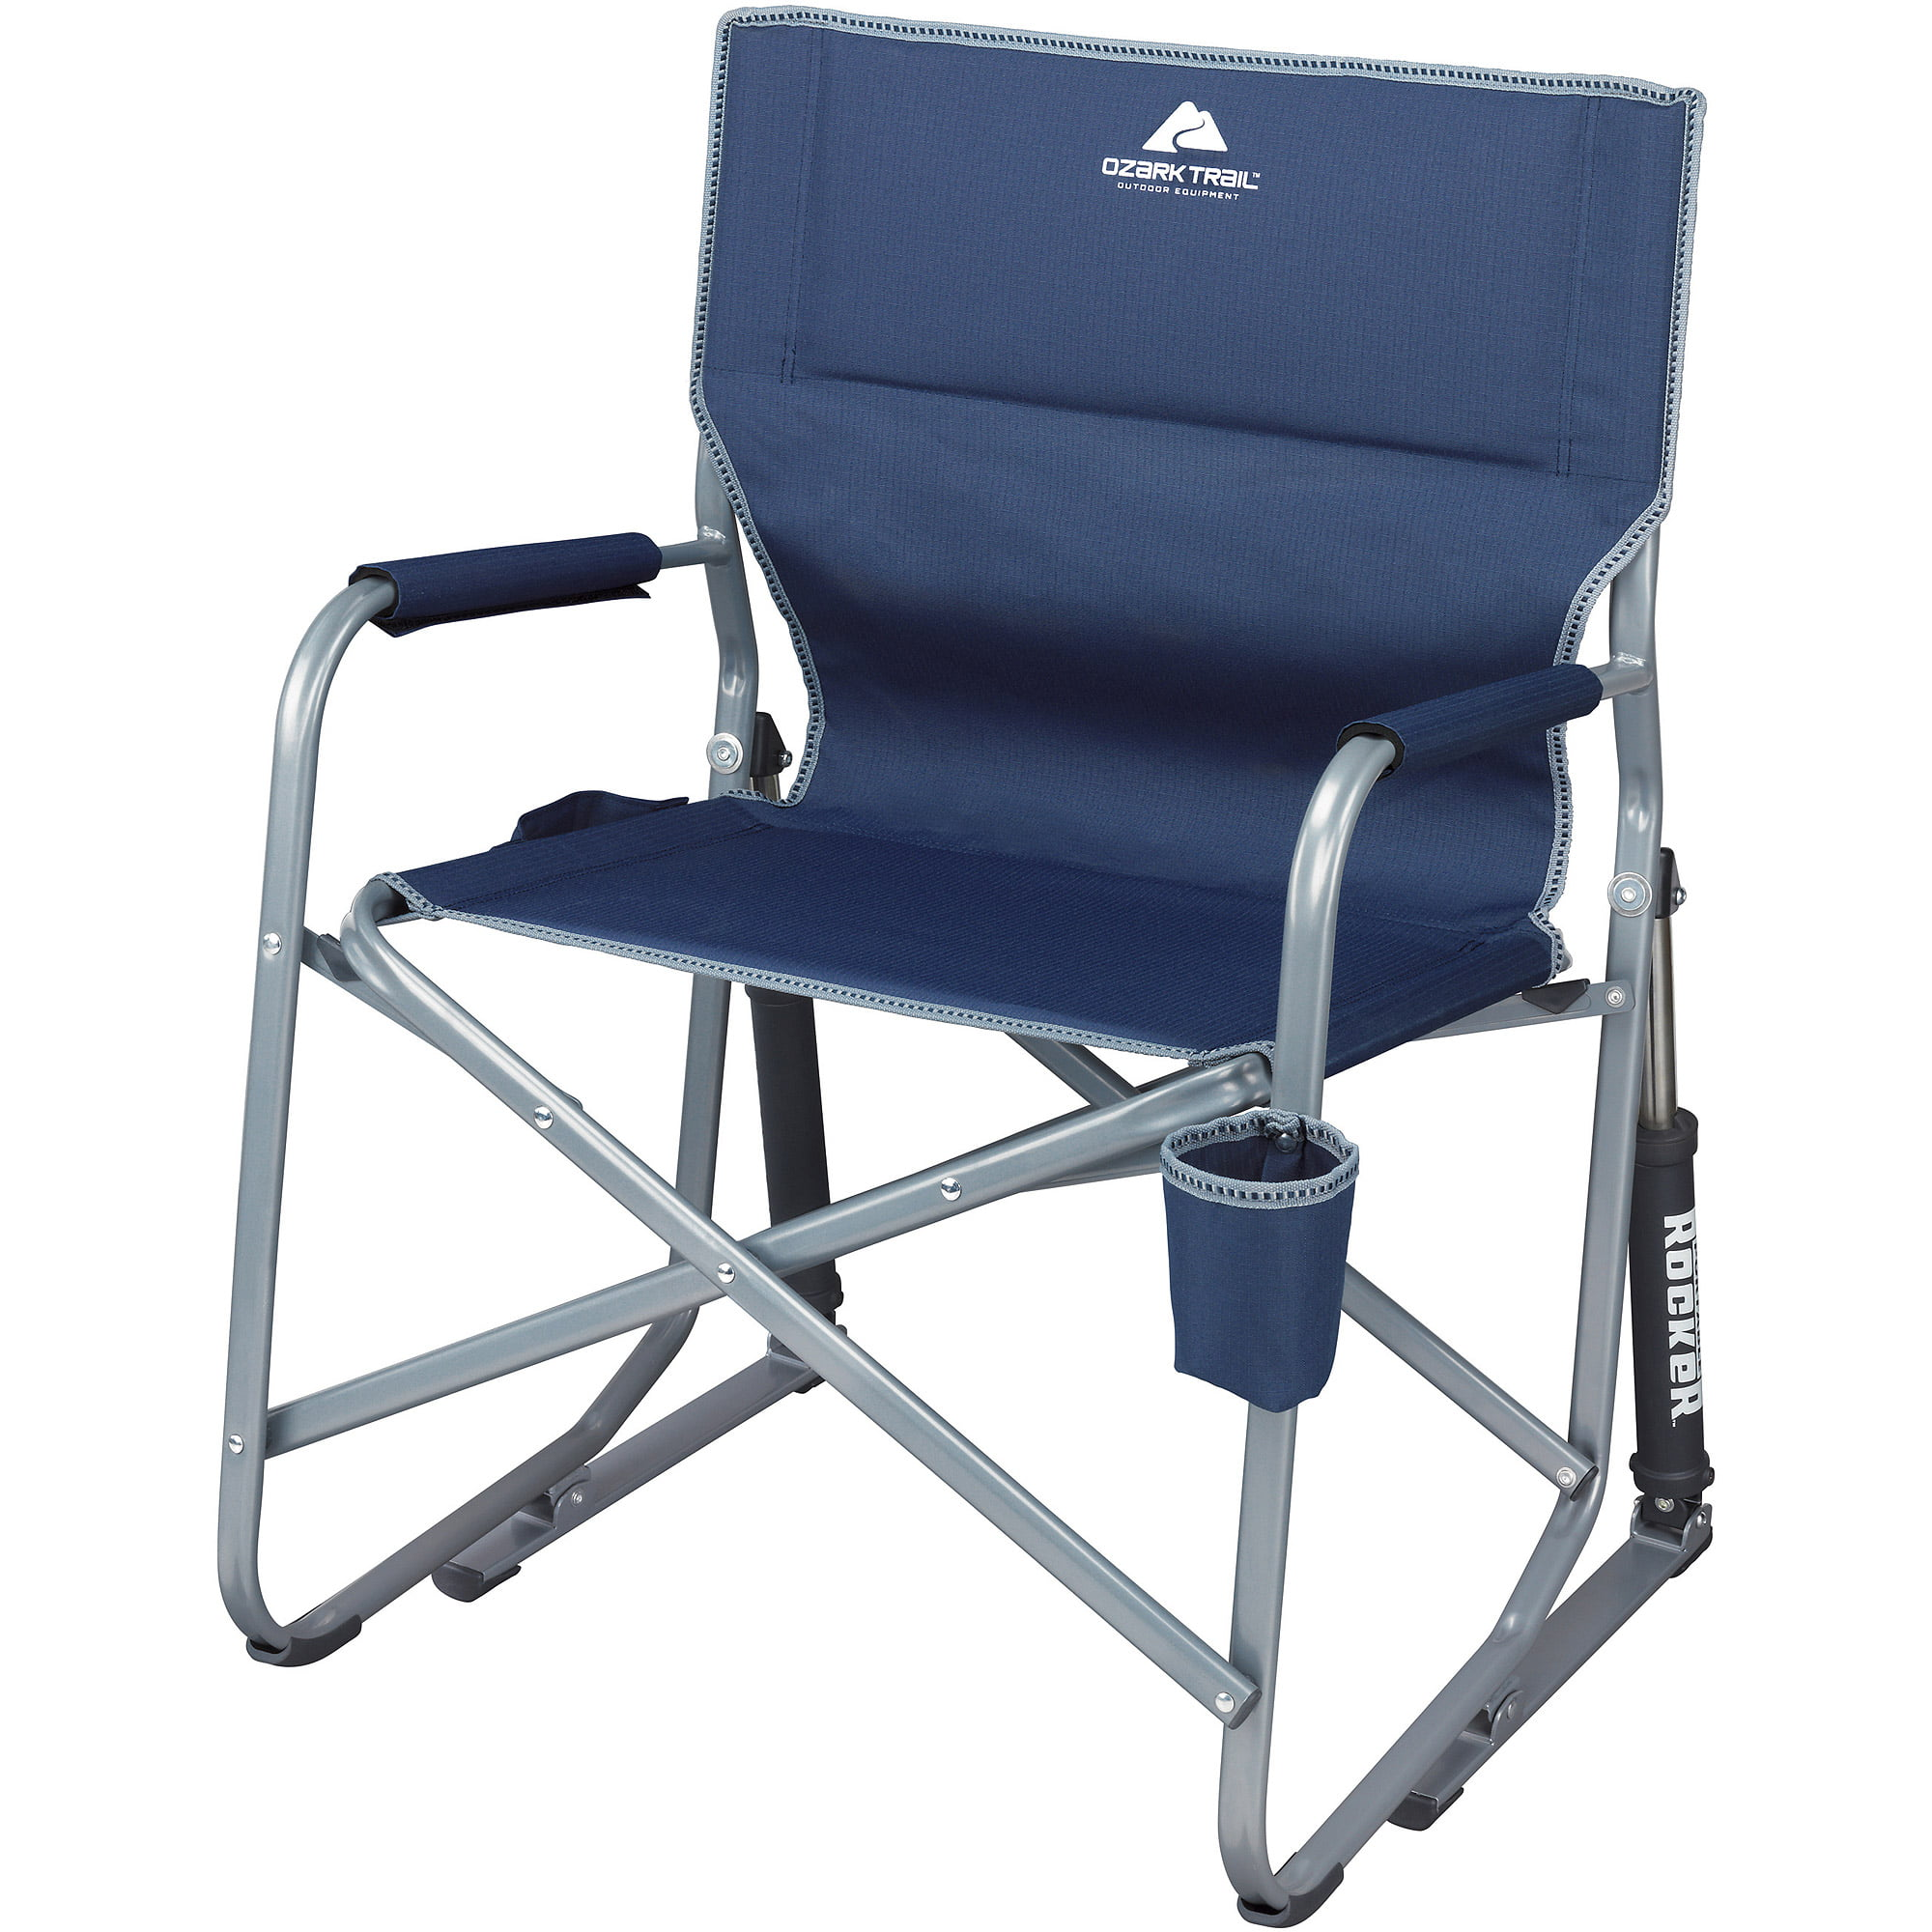 Ozark Trail Portable Rocking Chair Walmart – Folding Rocking Lawn Chairs